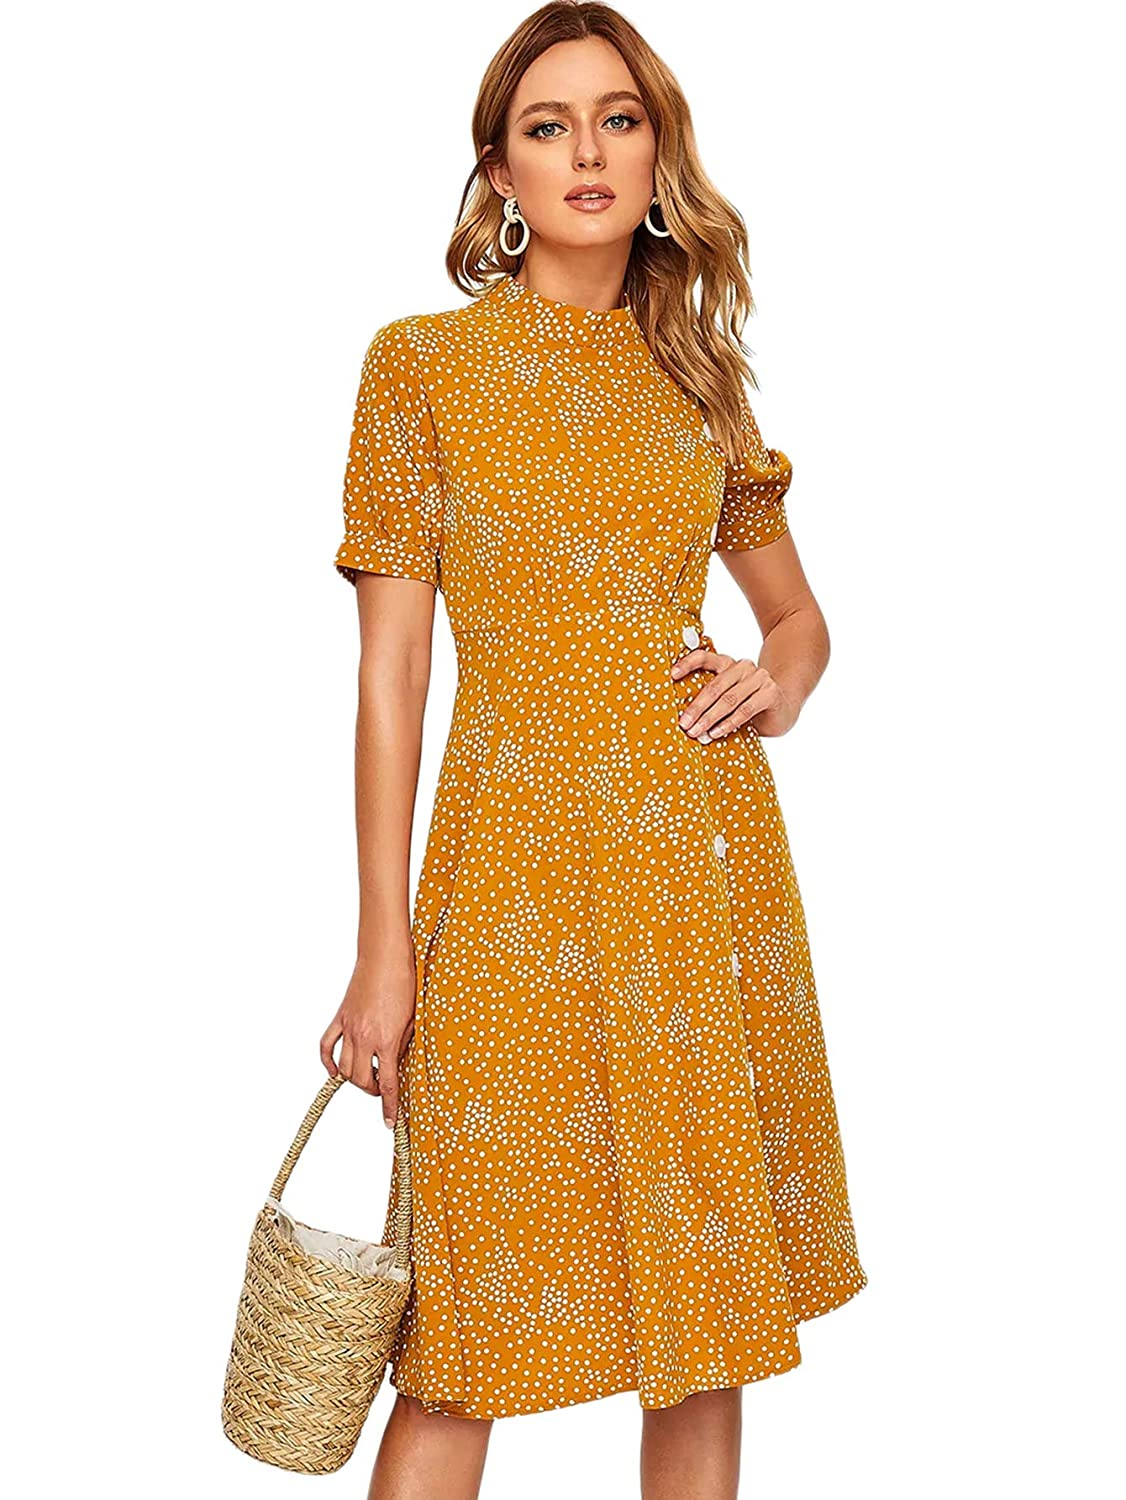 Swing Dance Clothing You Can Dance In SheIn Womens Casual Short Sleeve Polka Dot Button A Line Flare Midi Swing Dress $23.99 AT vintagedancer.com